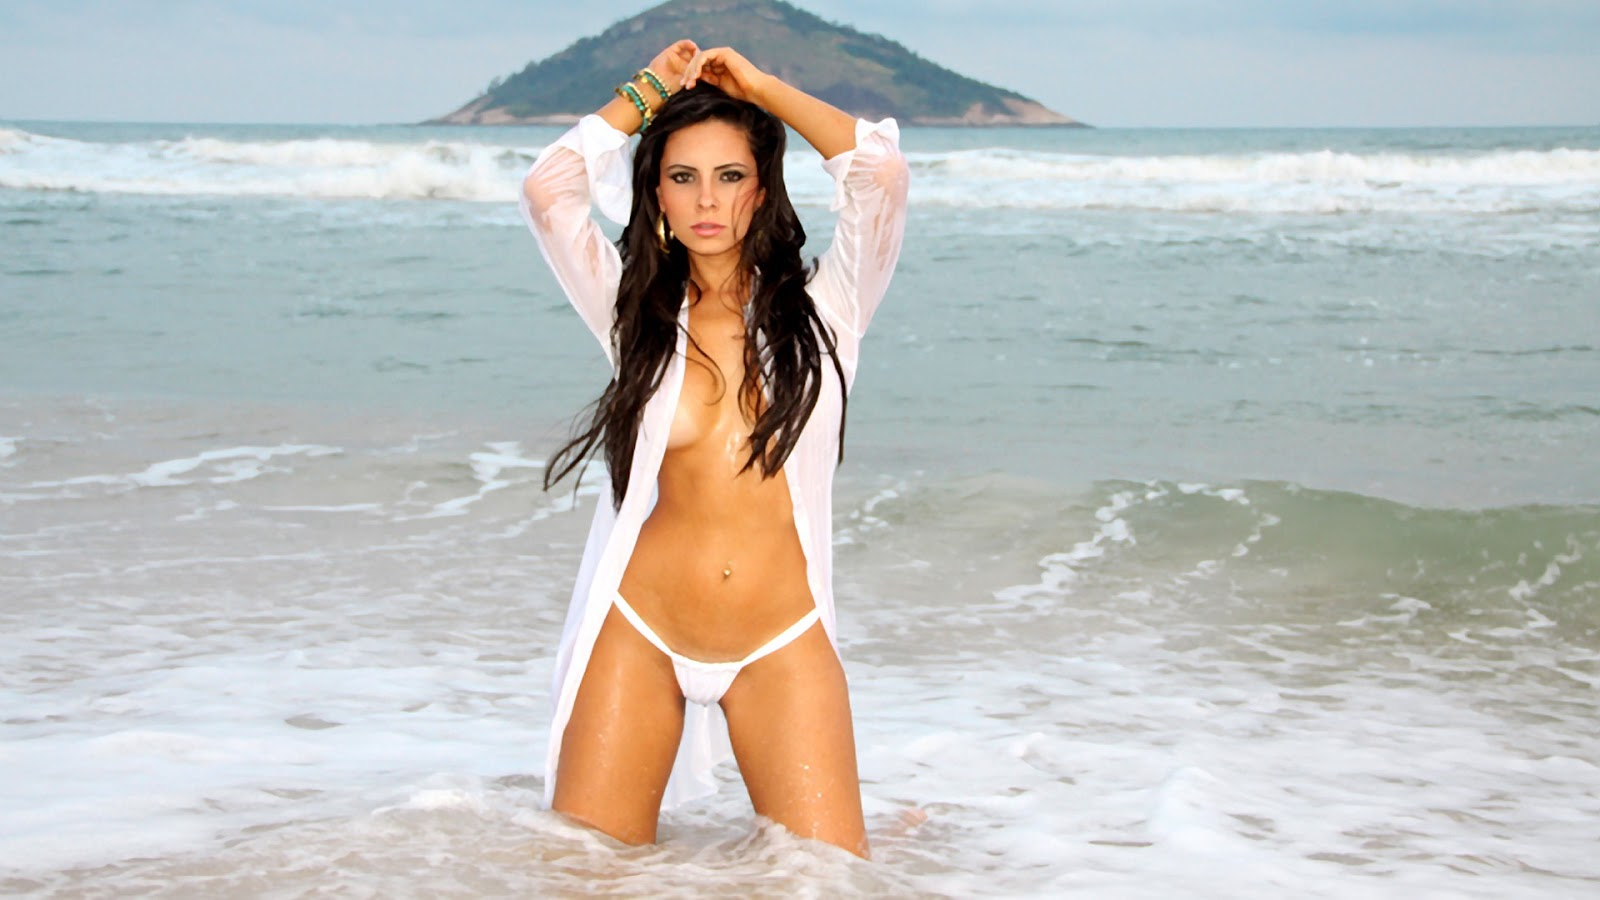 Hot Bikini Babes Hd Wallpapers  Sexy Hollywood And -8793